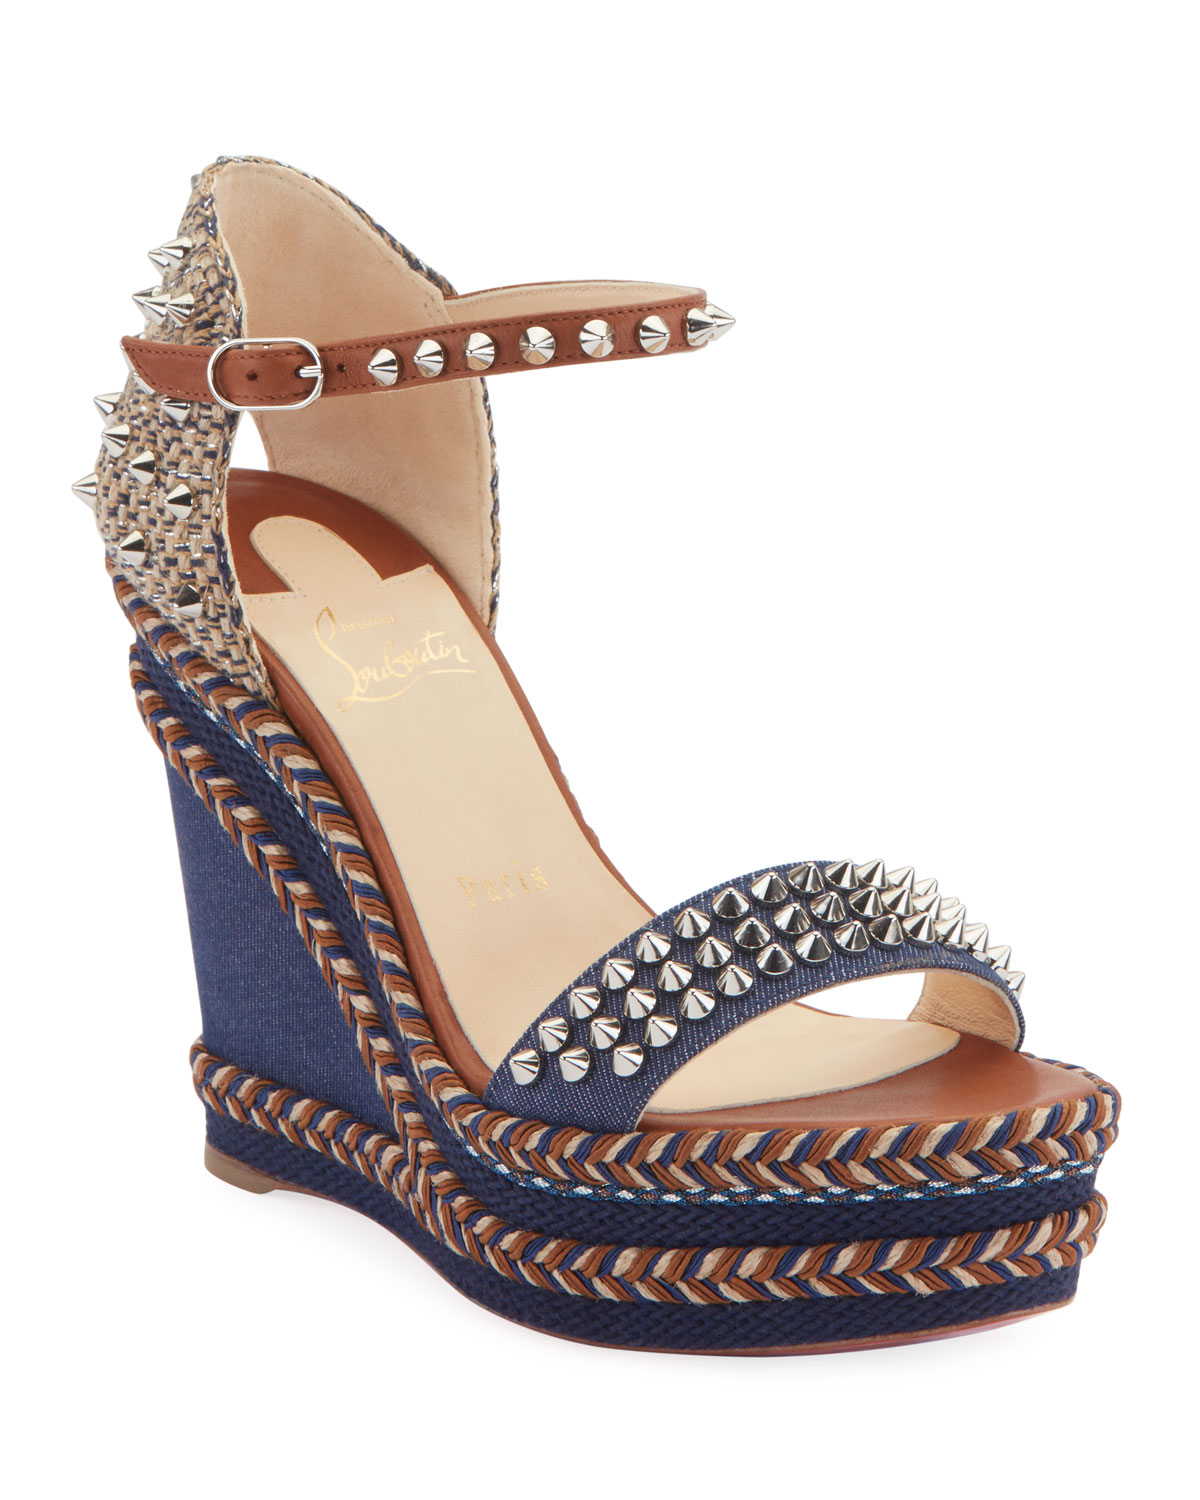 outlet store 14cb3 81476 Madmonica 120mm Spiked Denim Wedge Red Sole Sandals